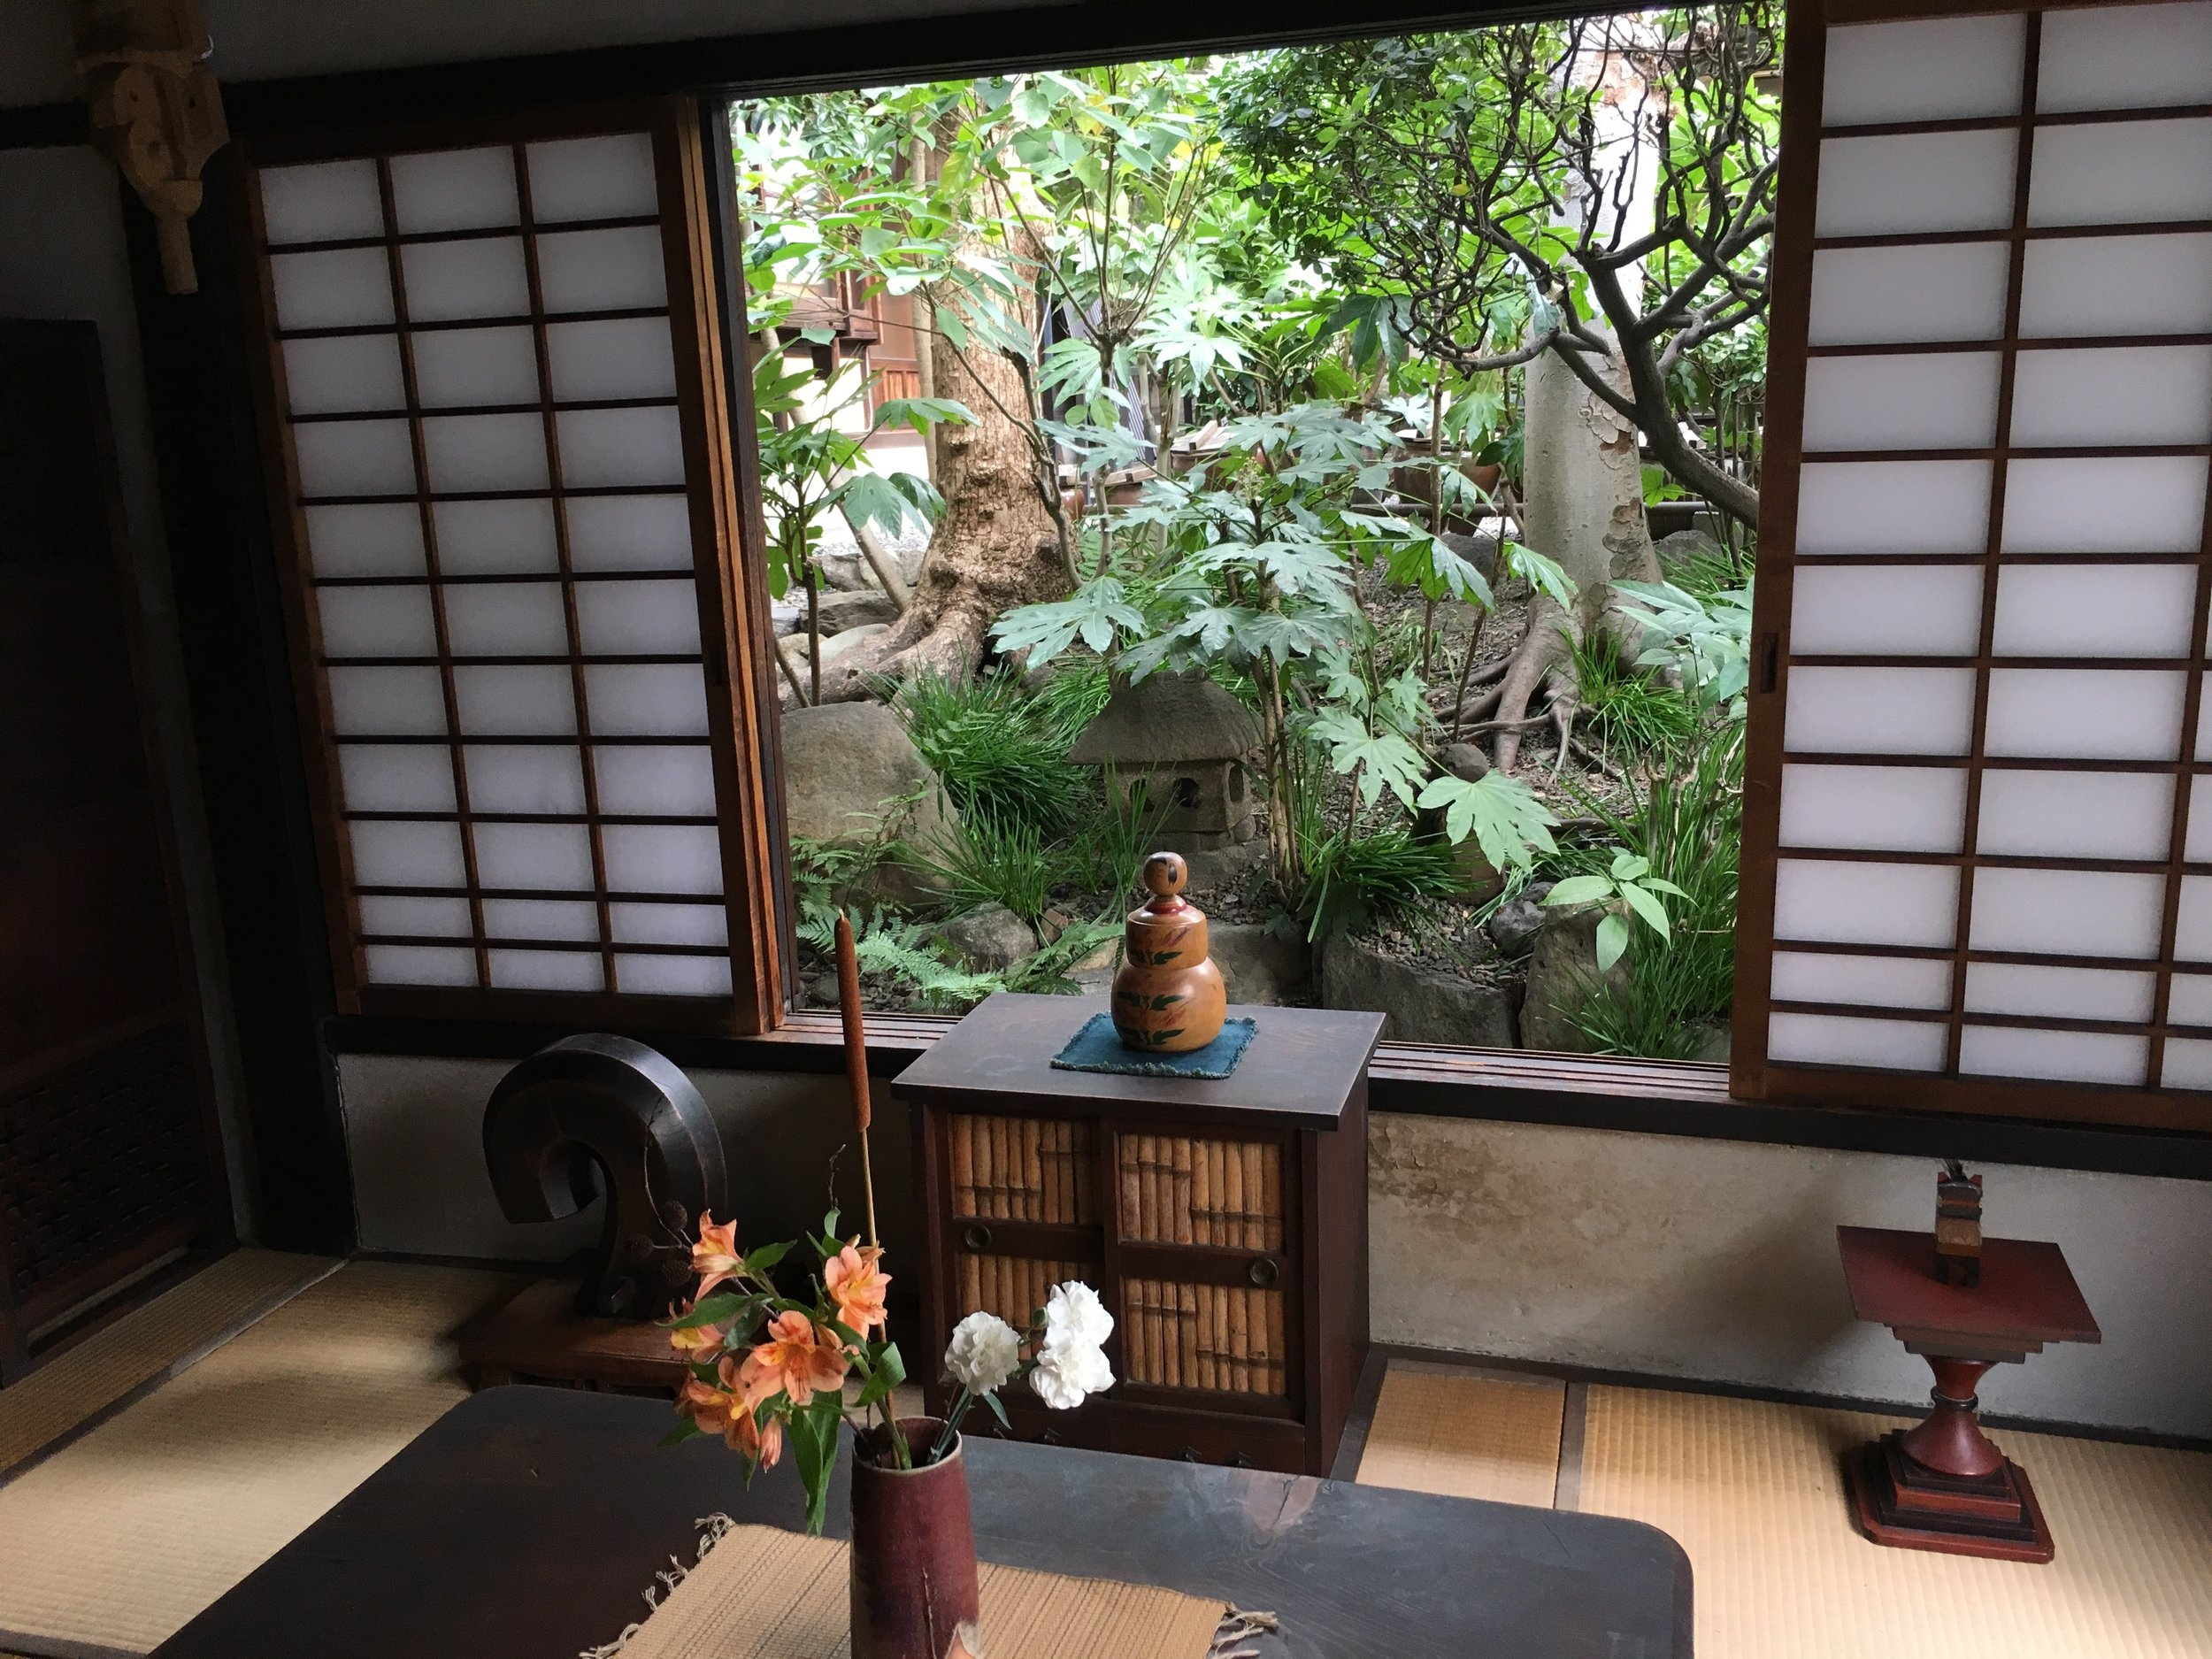 Departing … made a little easier in Kawai Kanjiro's Museum in Kyoto.